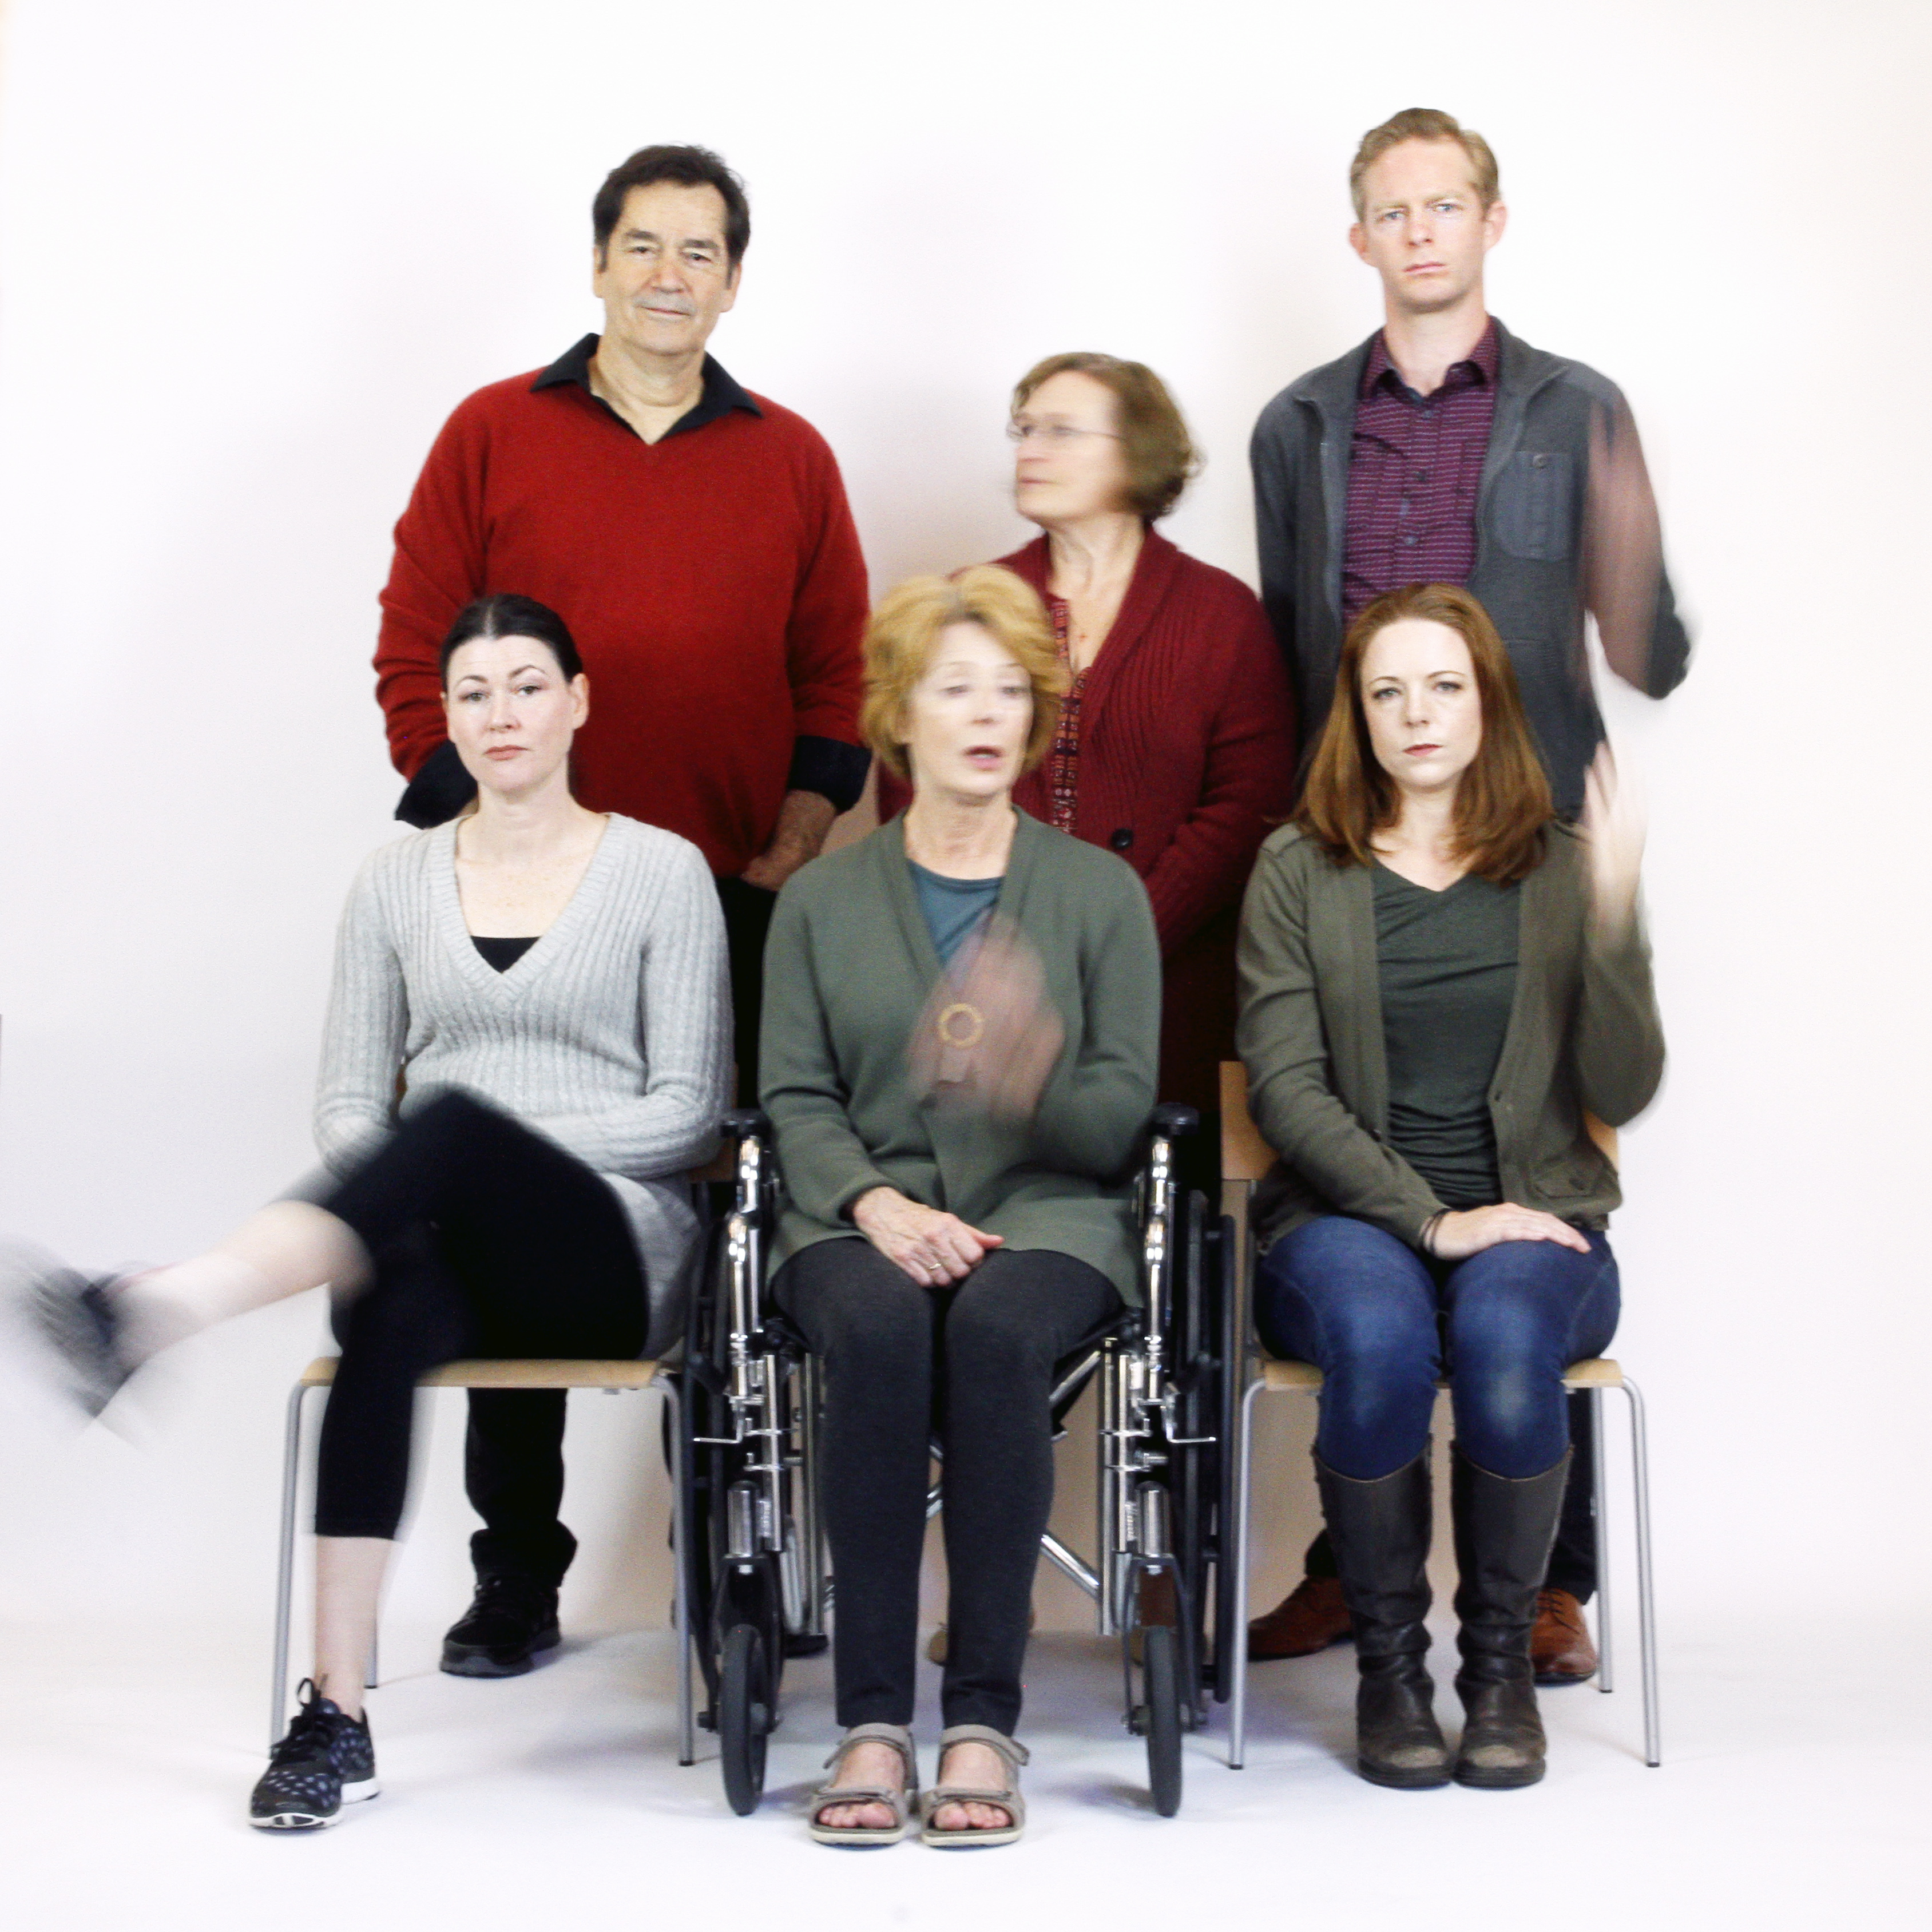 The Humans Cast